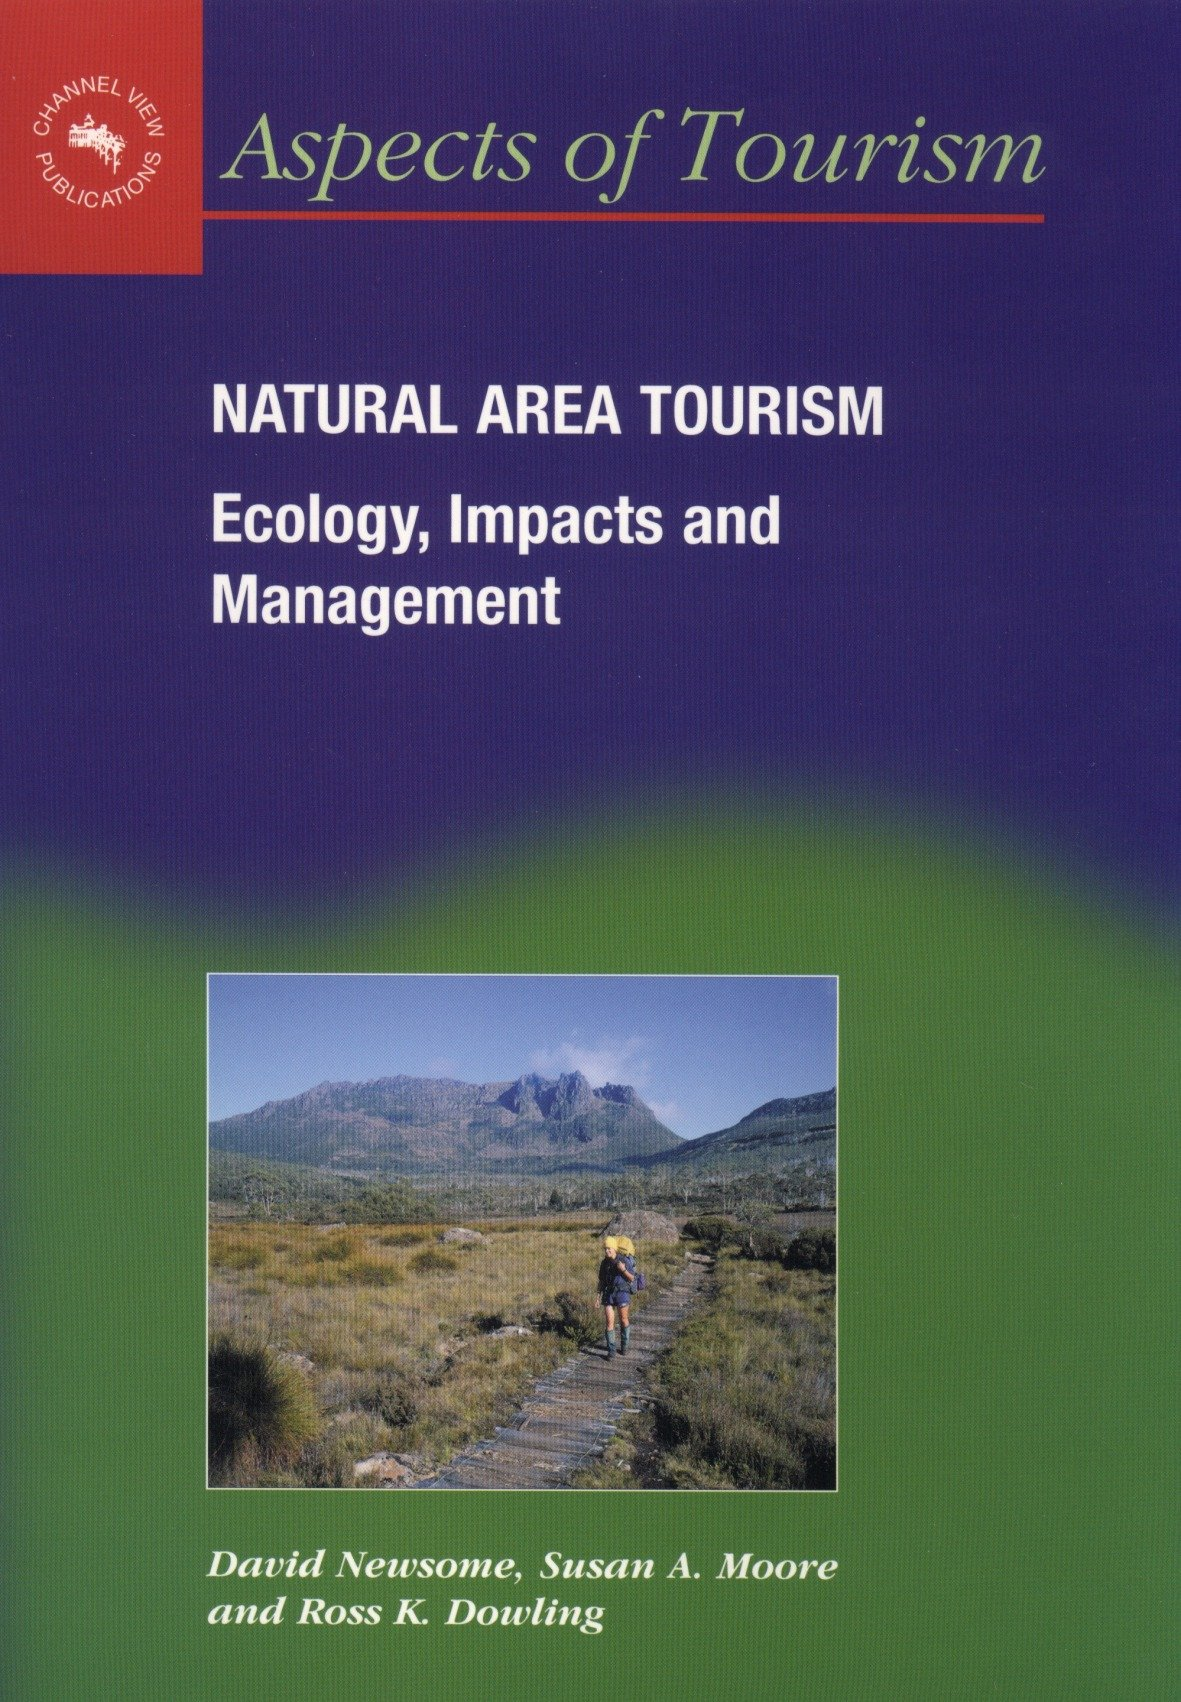 Download Natural Area Tourism: Ecology, Impacts and Management (Aspects of Tourism) PDF